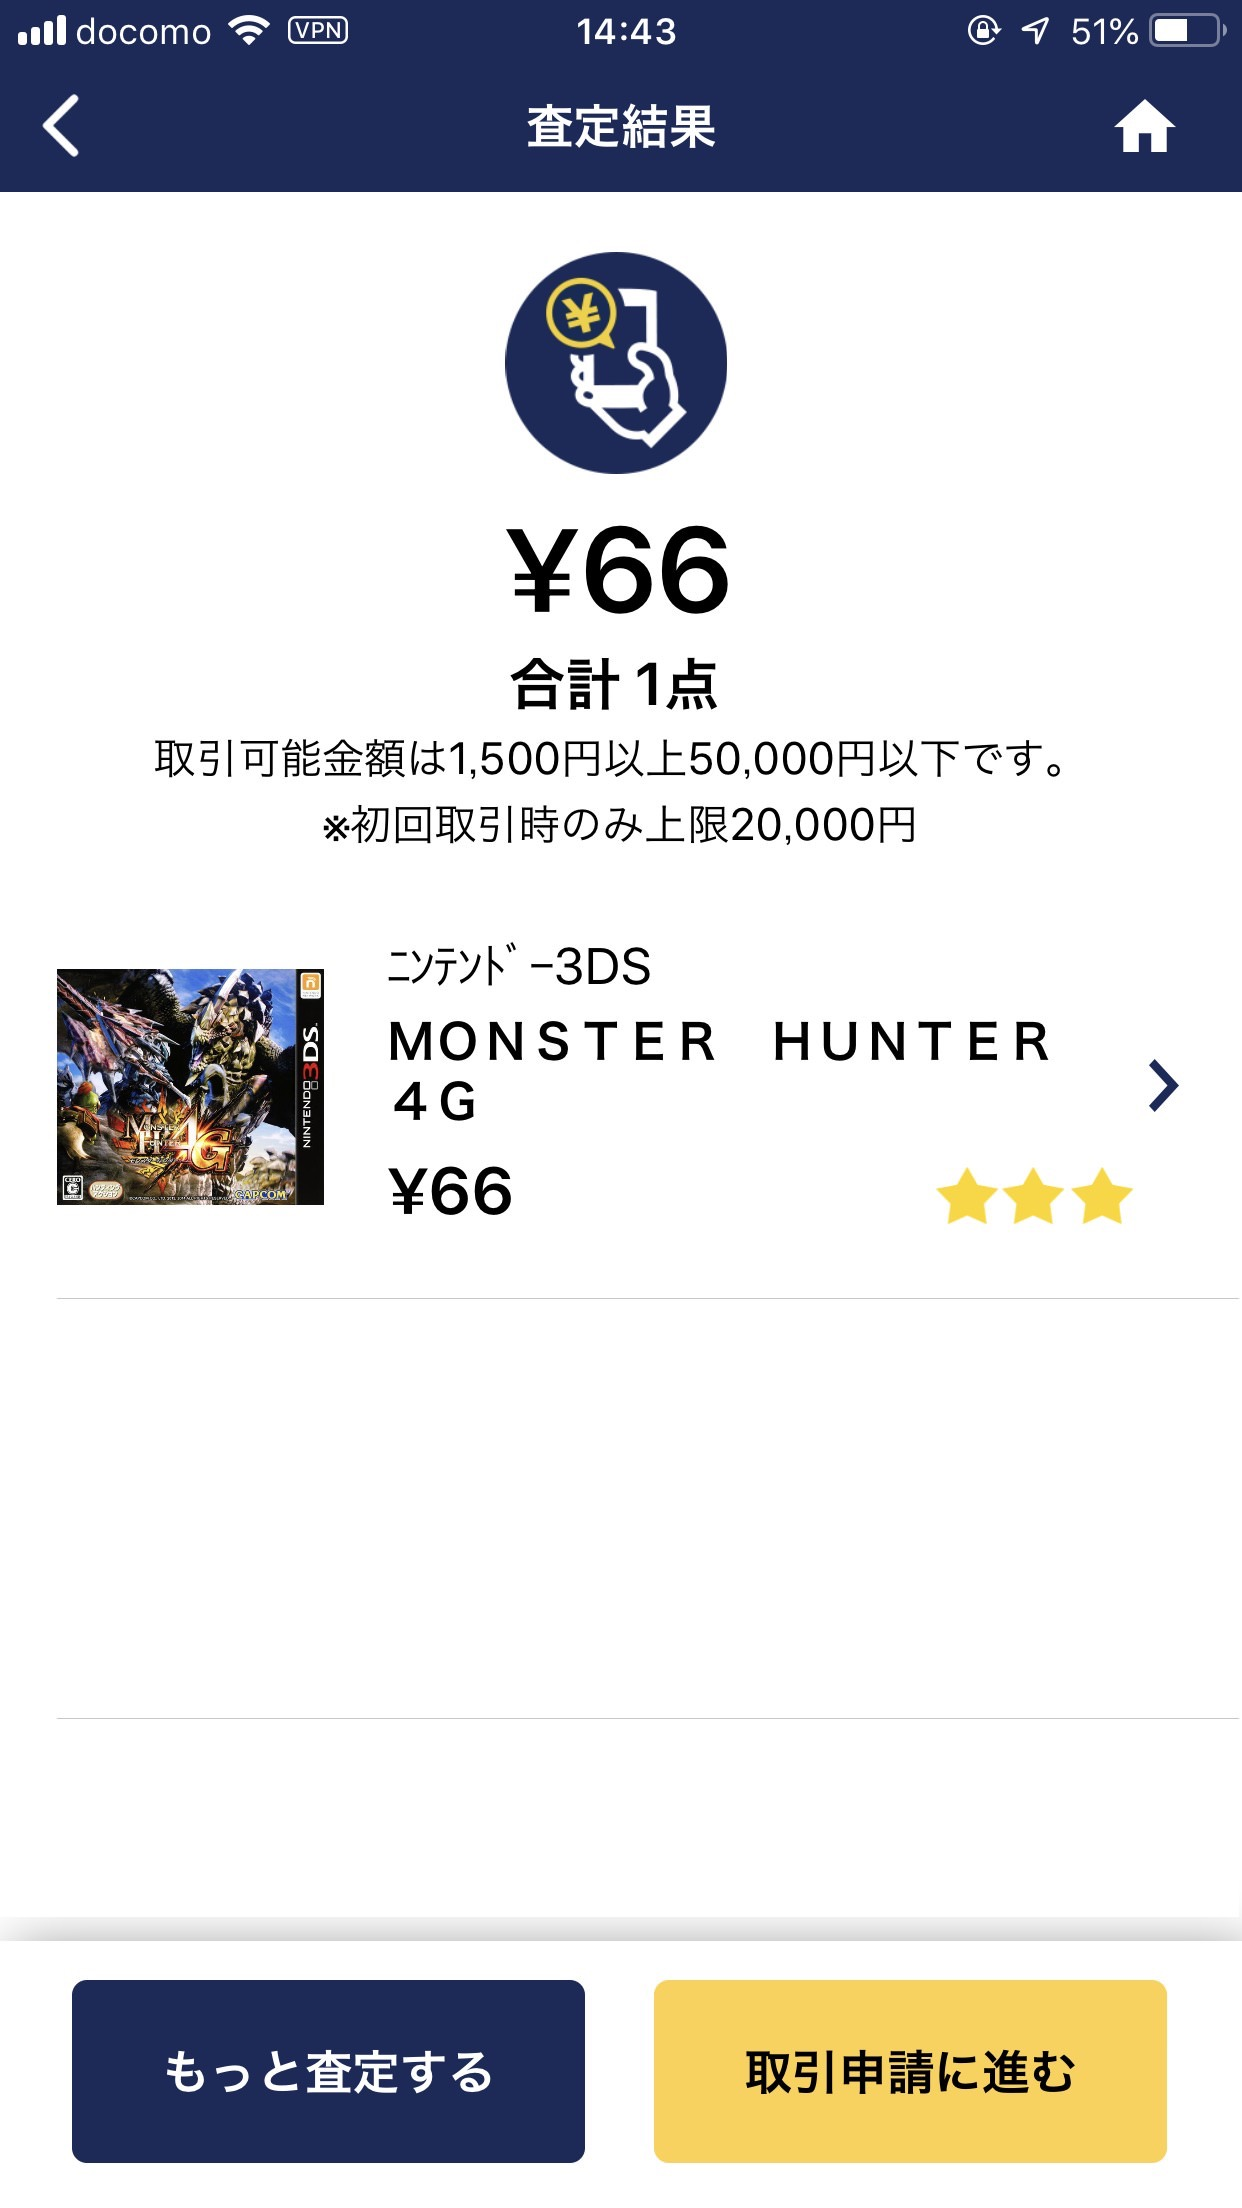 【iOS/Android】すぐ売れる!GEOのゲーム即金買取アプリ「ゲオスグ」 7